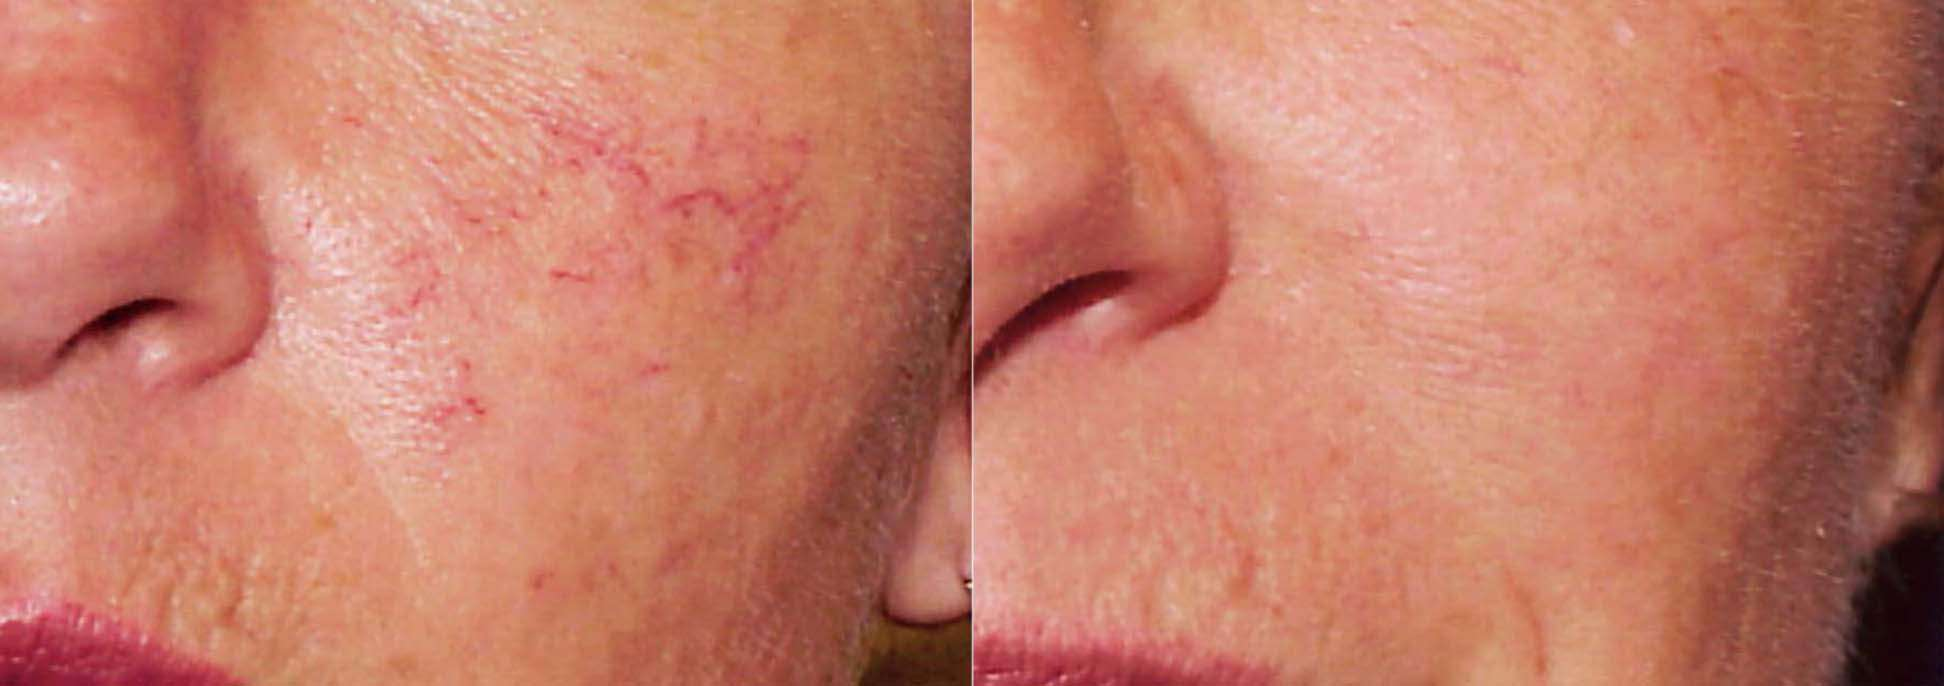 Rosacea - before and after treatment